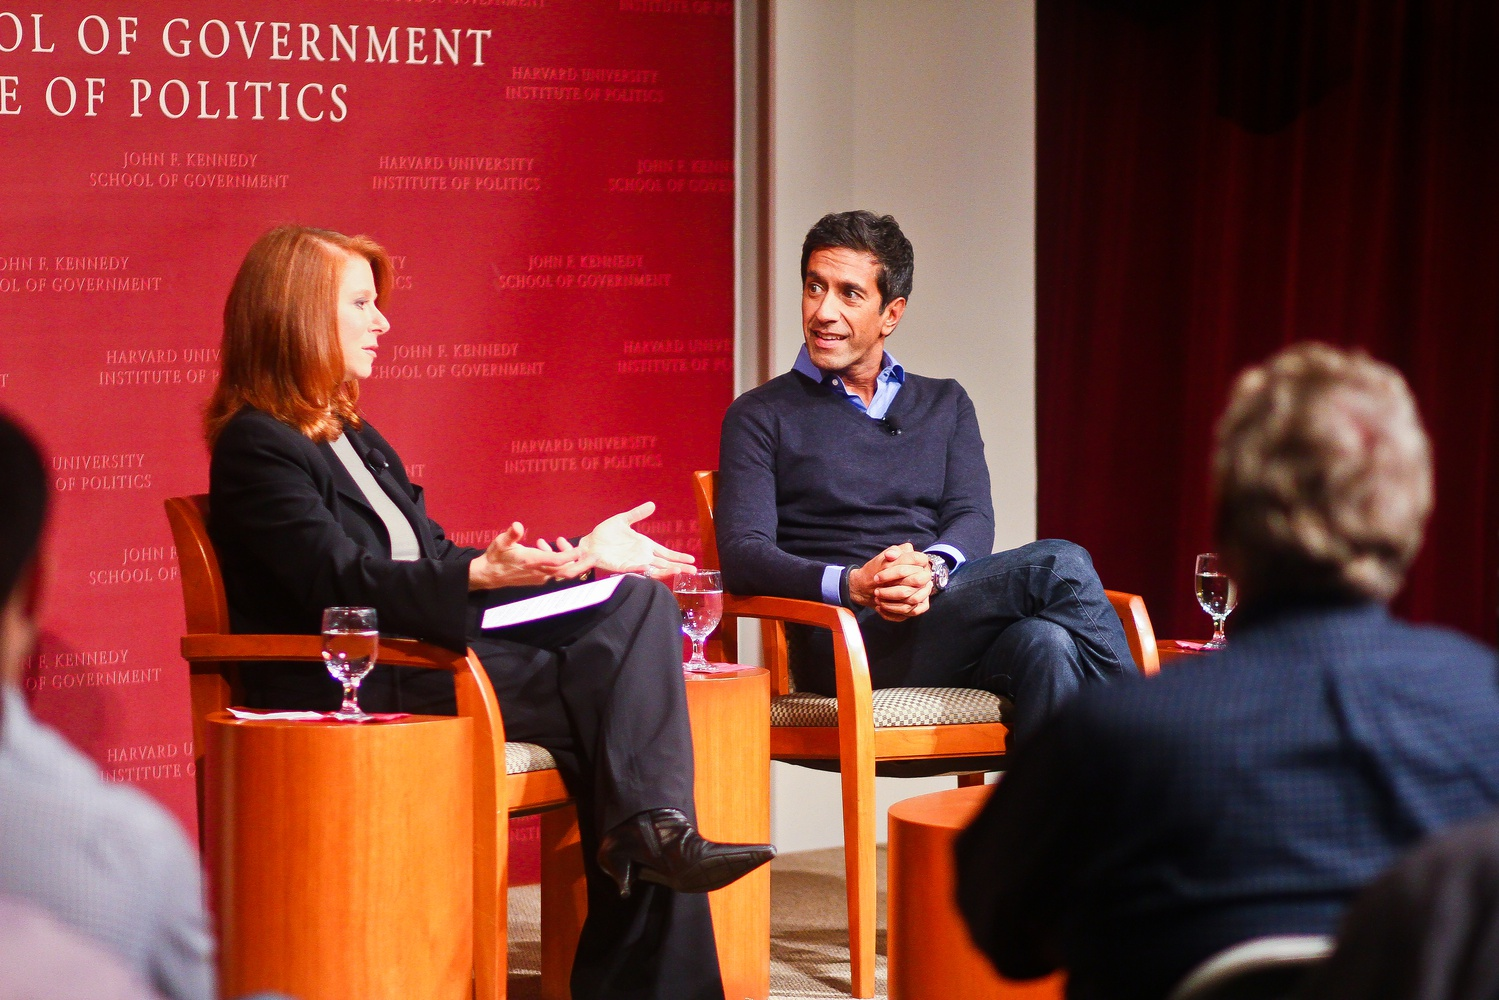 Dr. Sanjay Gupta, Chief Medical Correspondent at CNN, spoke about the potential of medical marijuana during an Institute of Politics forum event on Wednesday evening. The conversation was moderated by Dr. Staci Gruber, an Associate Professor of Psychiatry at Harvard Medical School.